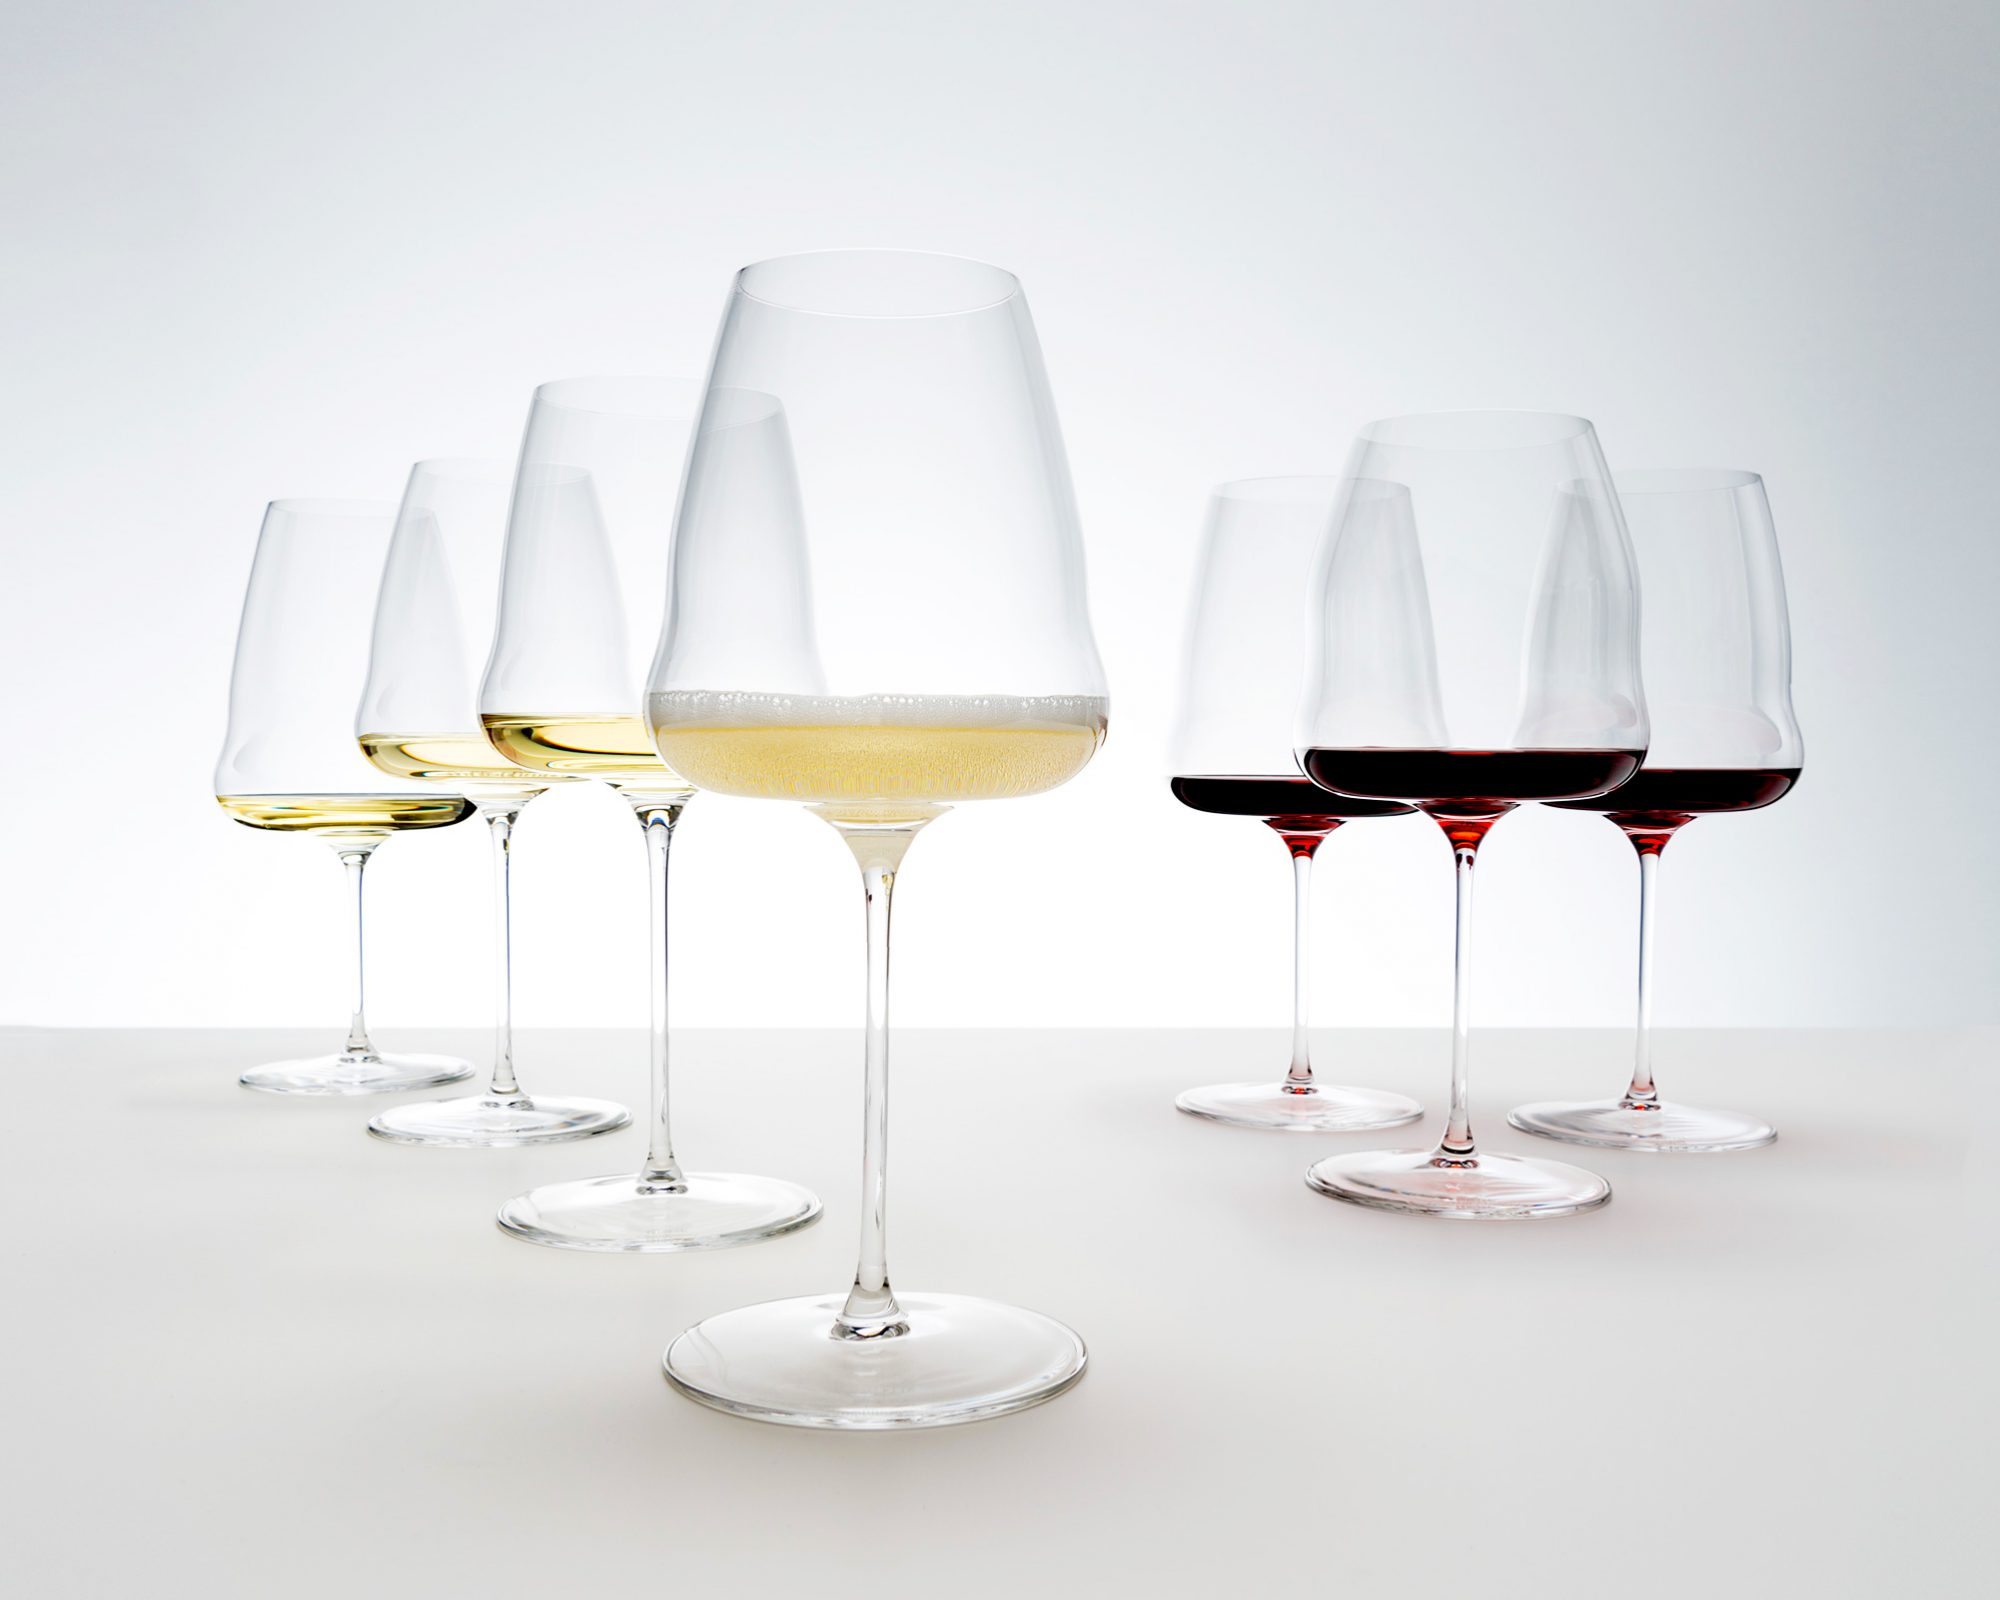 group of wine glasses with red and white wine